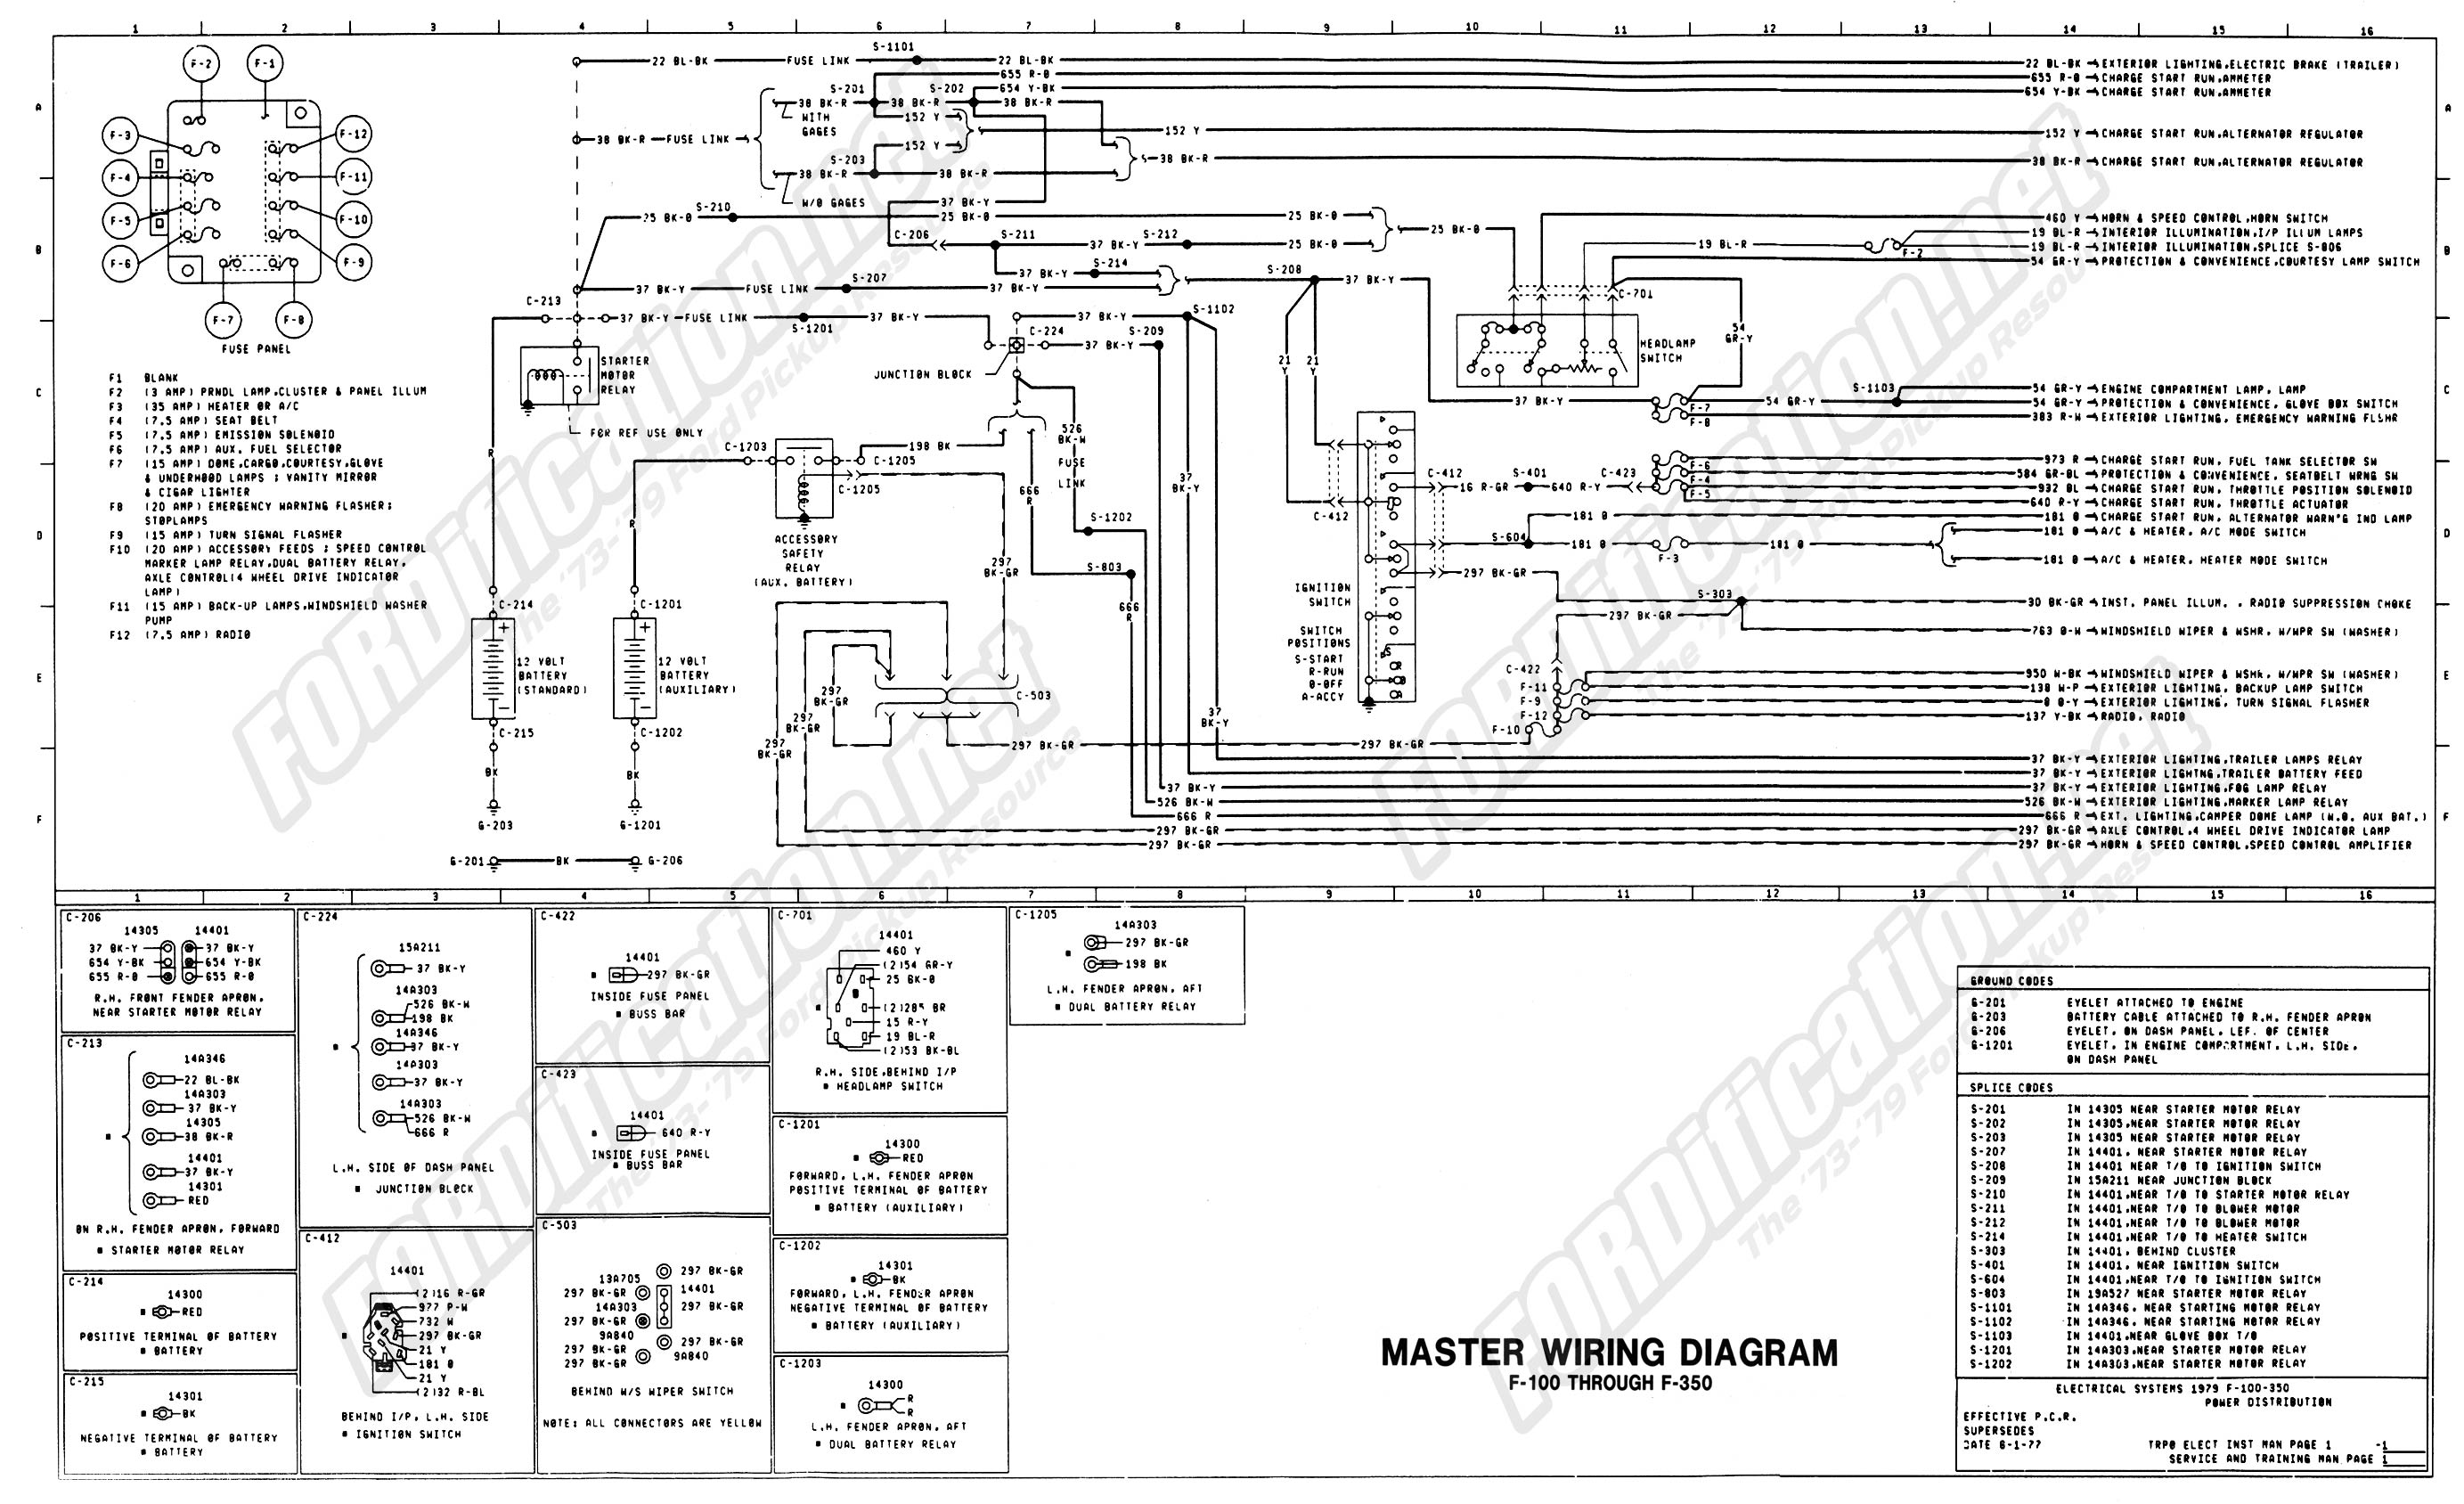 1976 Ford F700 Dash Wiring Diagram Schematics Cat 963 Engine 1973 1979 Truck Diagrams Fordification Net C Series Tilt Cab